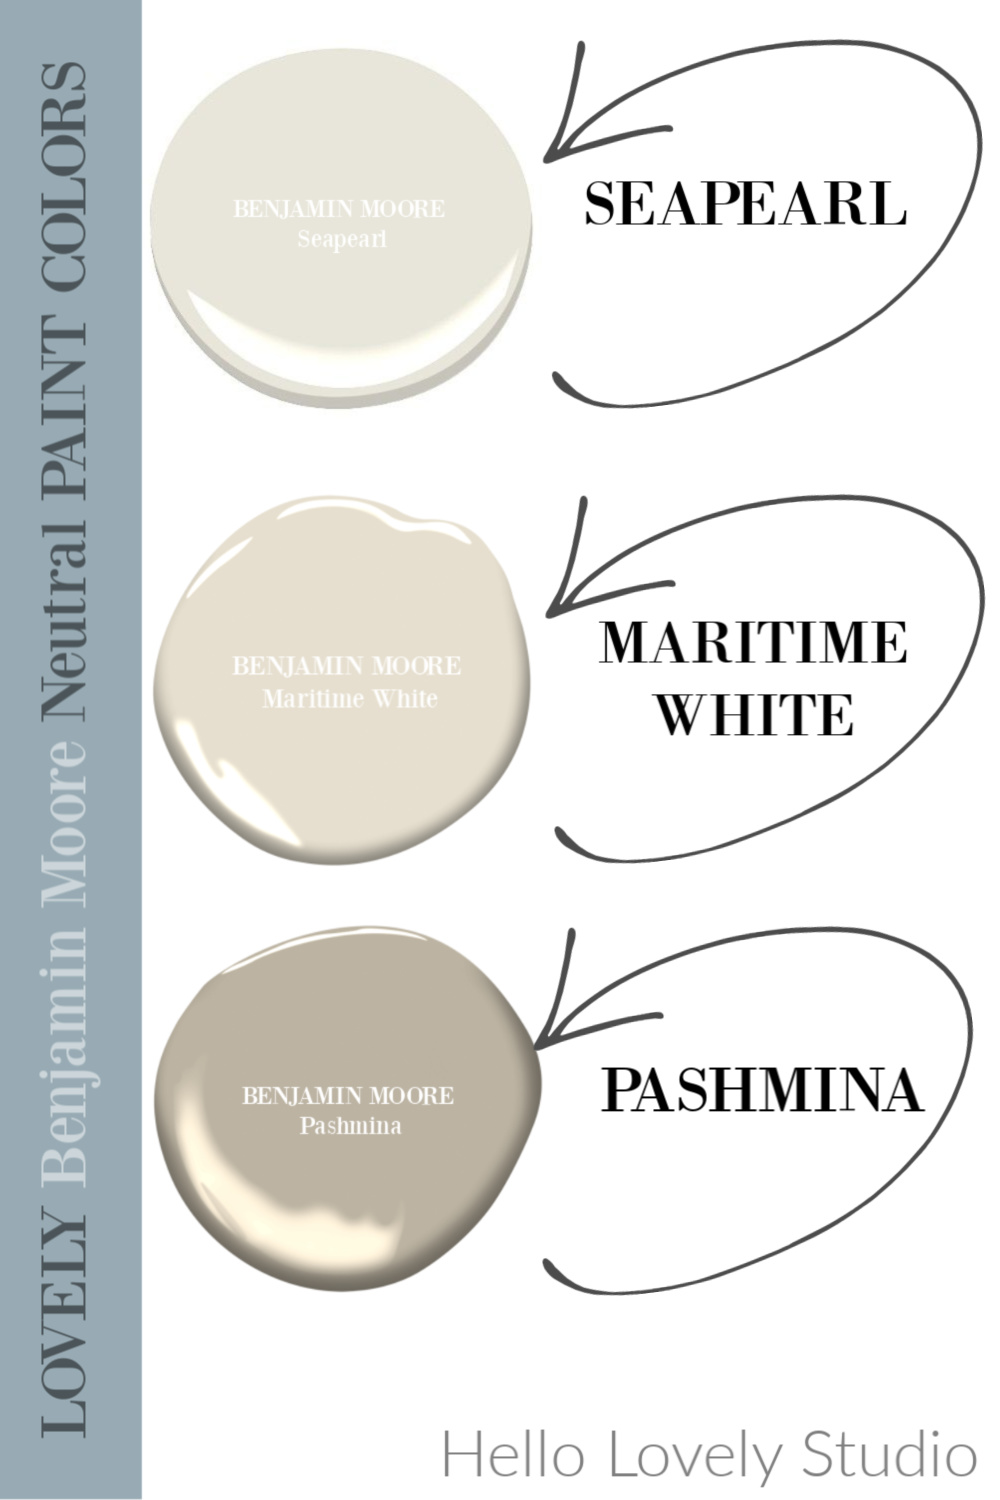 Neutral paint colors from Benjamin Moore I love - Hello Lovely Studio. #paintcolors #benjaminmoore #seapearl #pashmina #maritimewhite #whitepaintcolors #hellolovelystudio